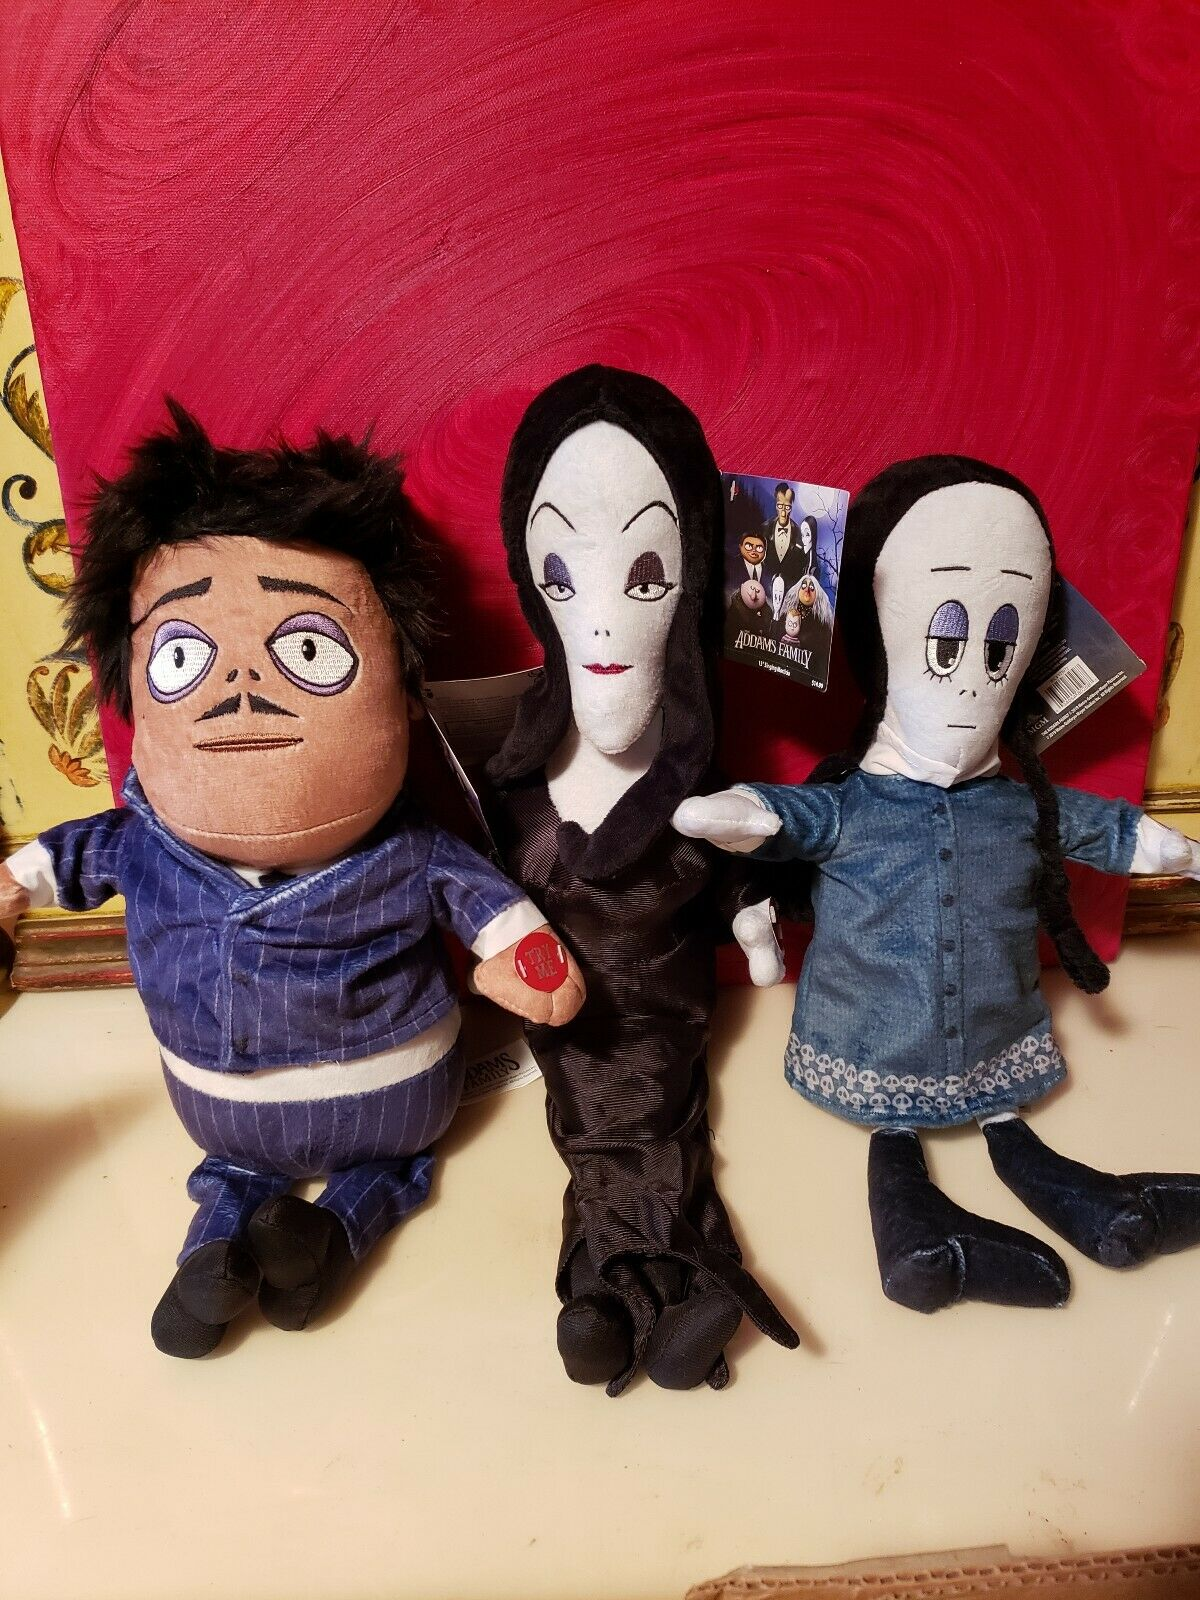 3 Adams Family Musical Plush Dolls 13  Gomez Mortica & Wednesday Theme Song NWT